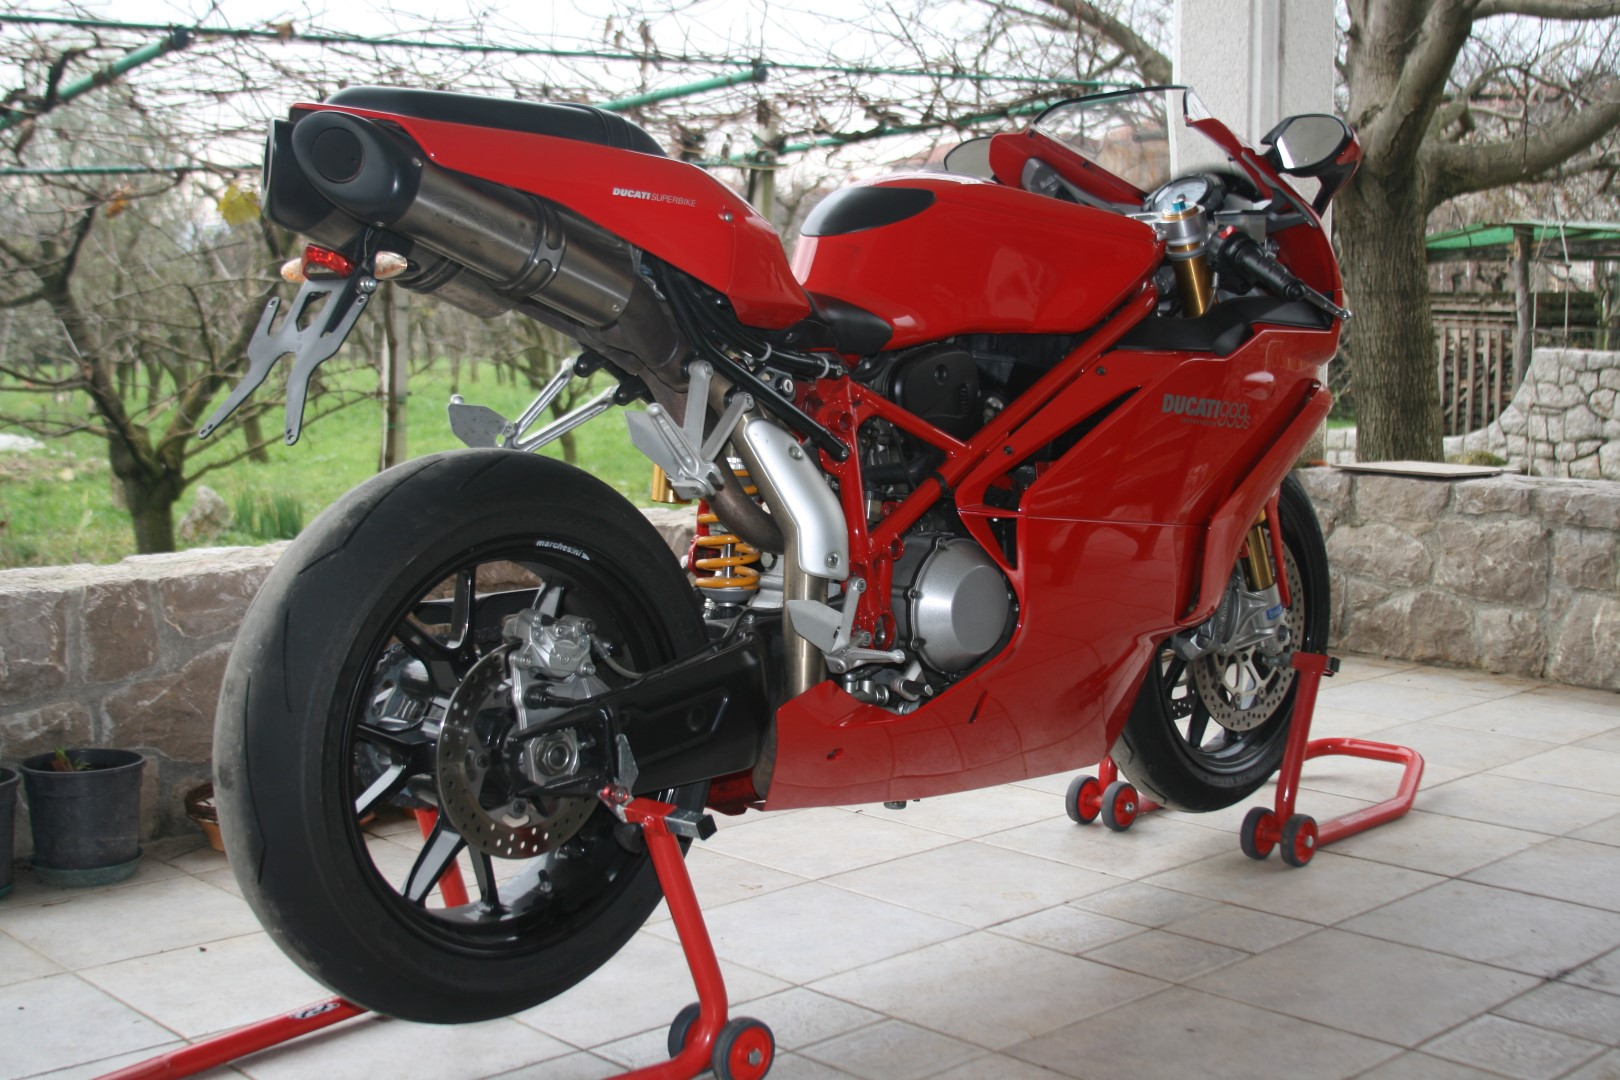 hight resolution of ducati 749 999 tail light wiring ducati ms the ultimate ducati forum ducati 999 tail light wiring